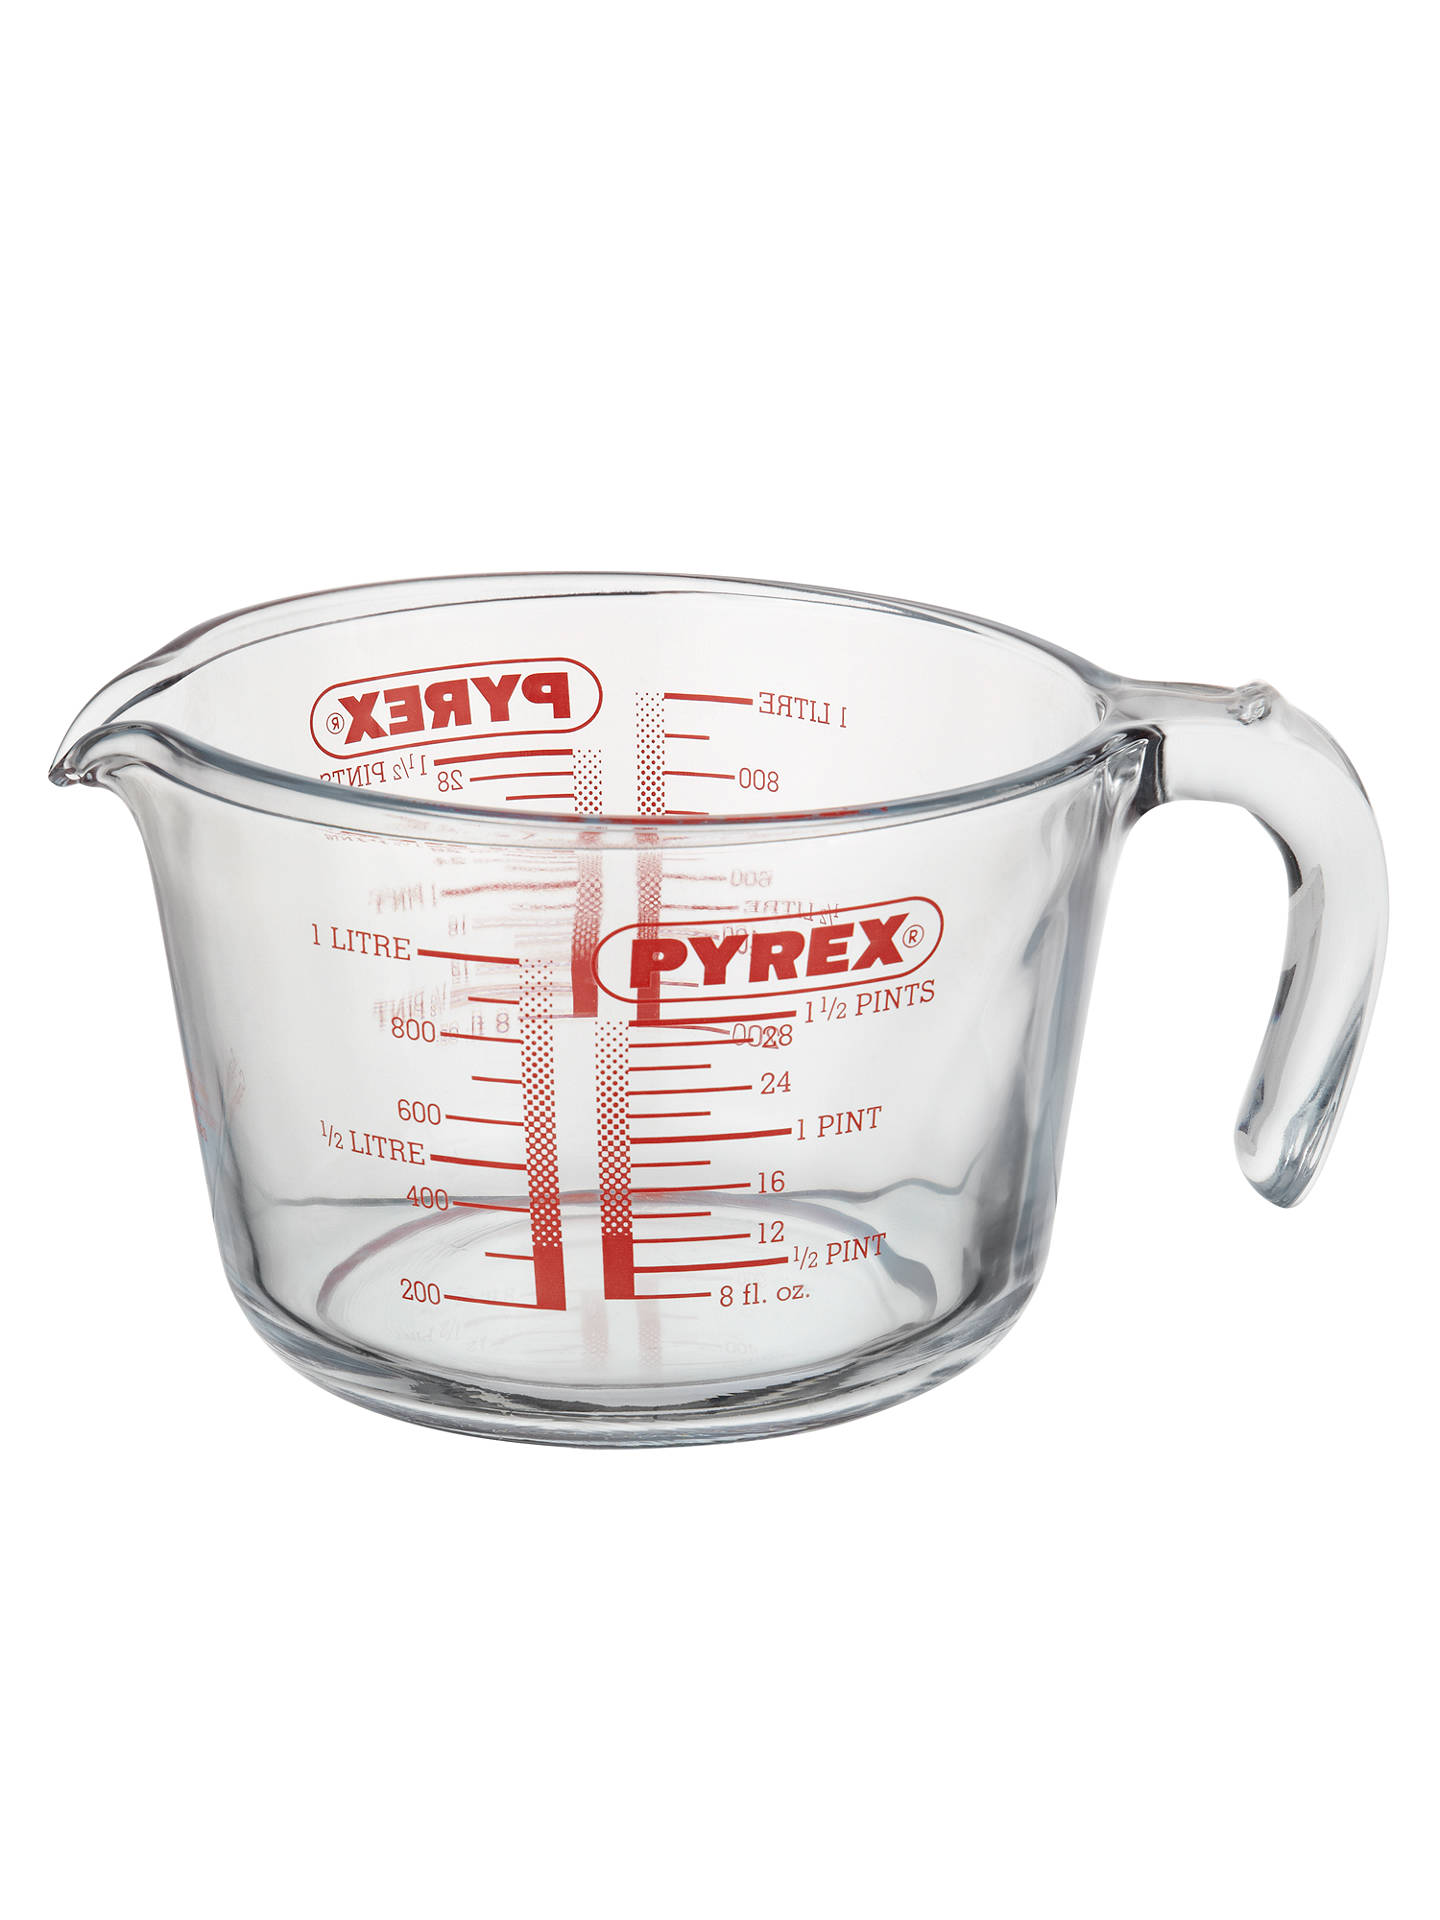 BuyPyrex 1L Glass Measuring Jug Online at johnlewis.com